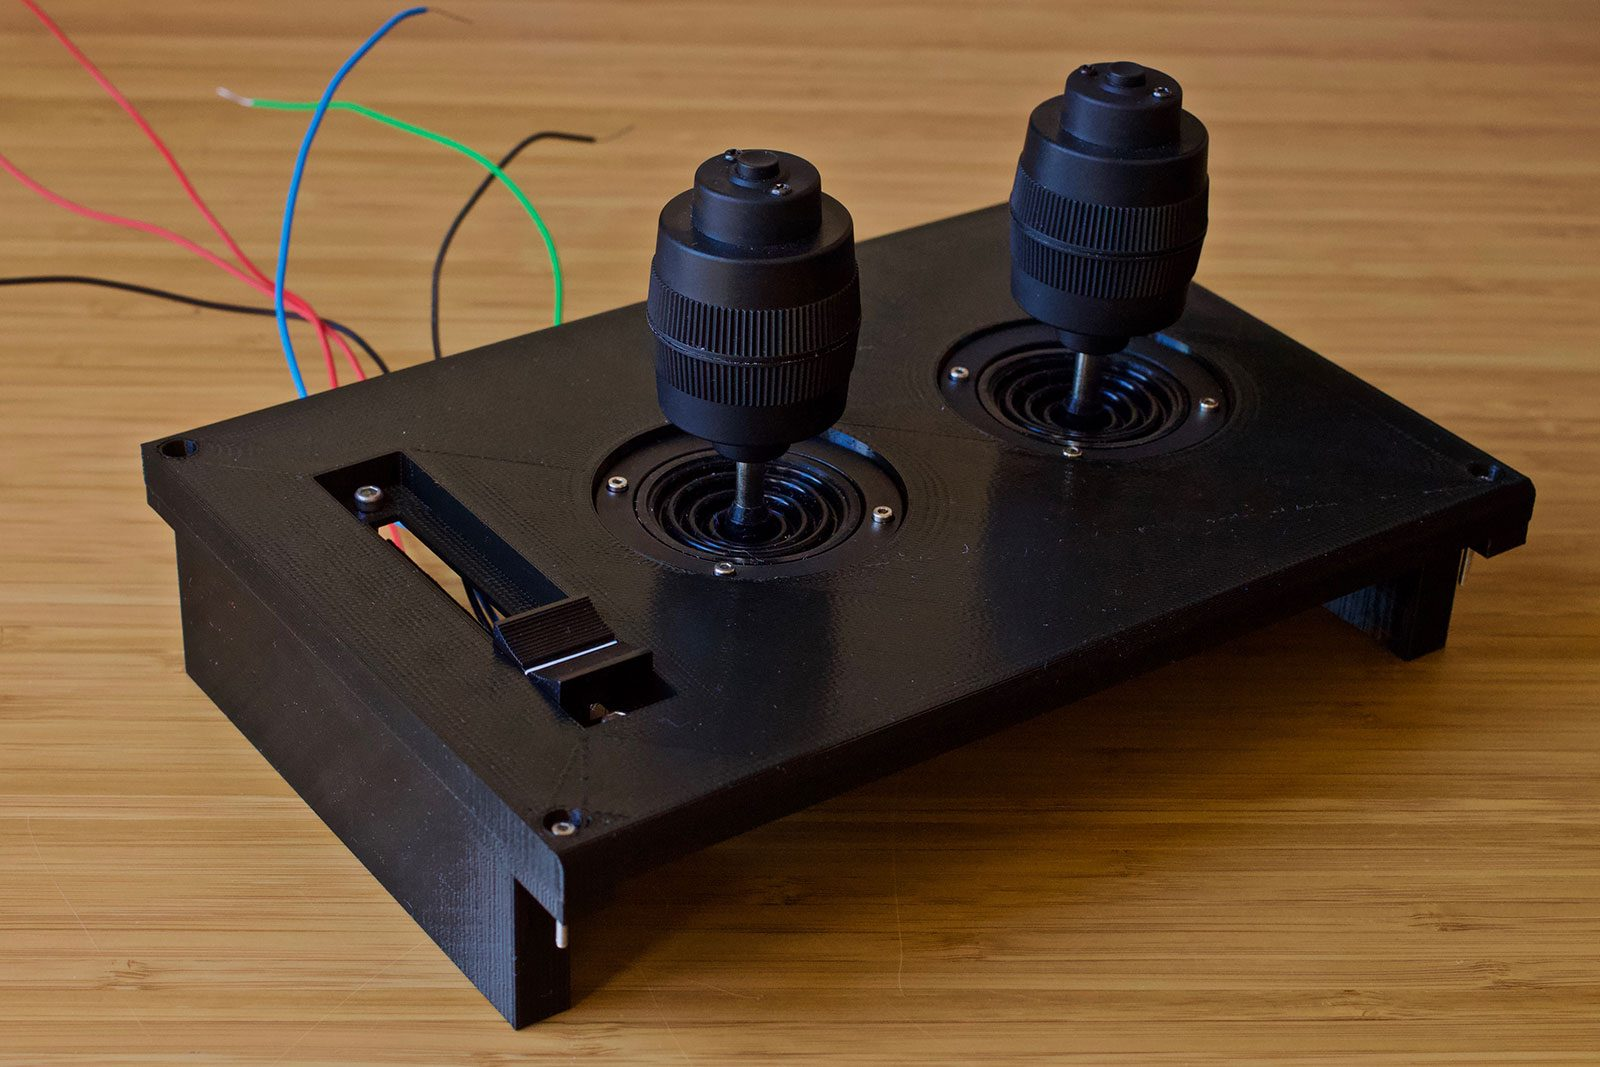 Joysticks and Throttle Component Test